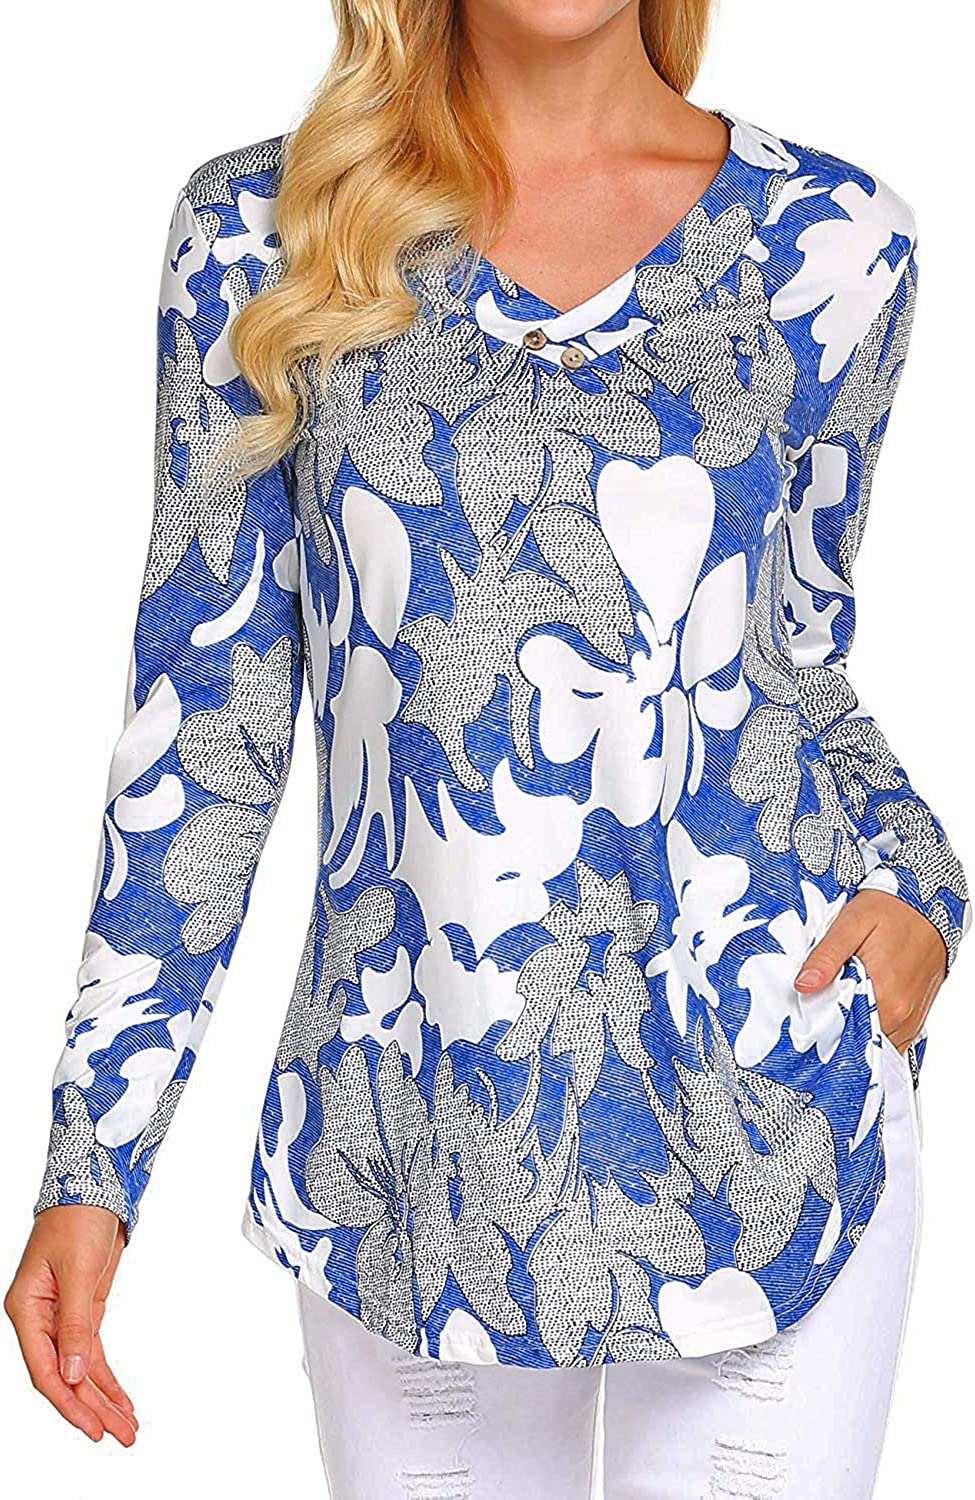 Sweetnight Womens Fall Long Sleeve Floral Print Tunic Tops Casual Loose Fitting Flowy Shirts Blouses